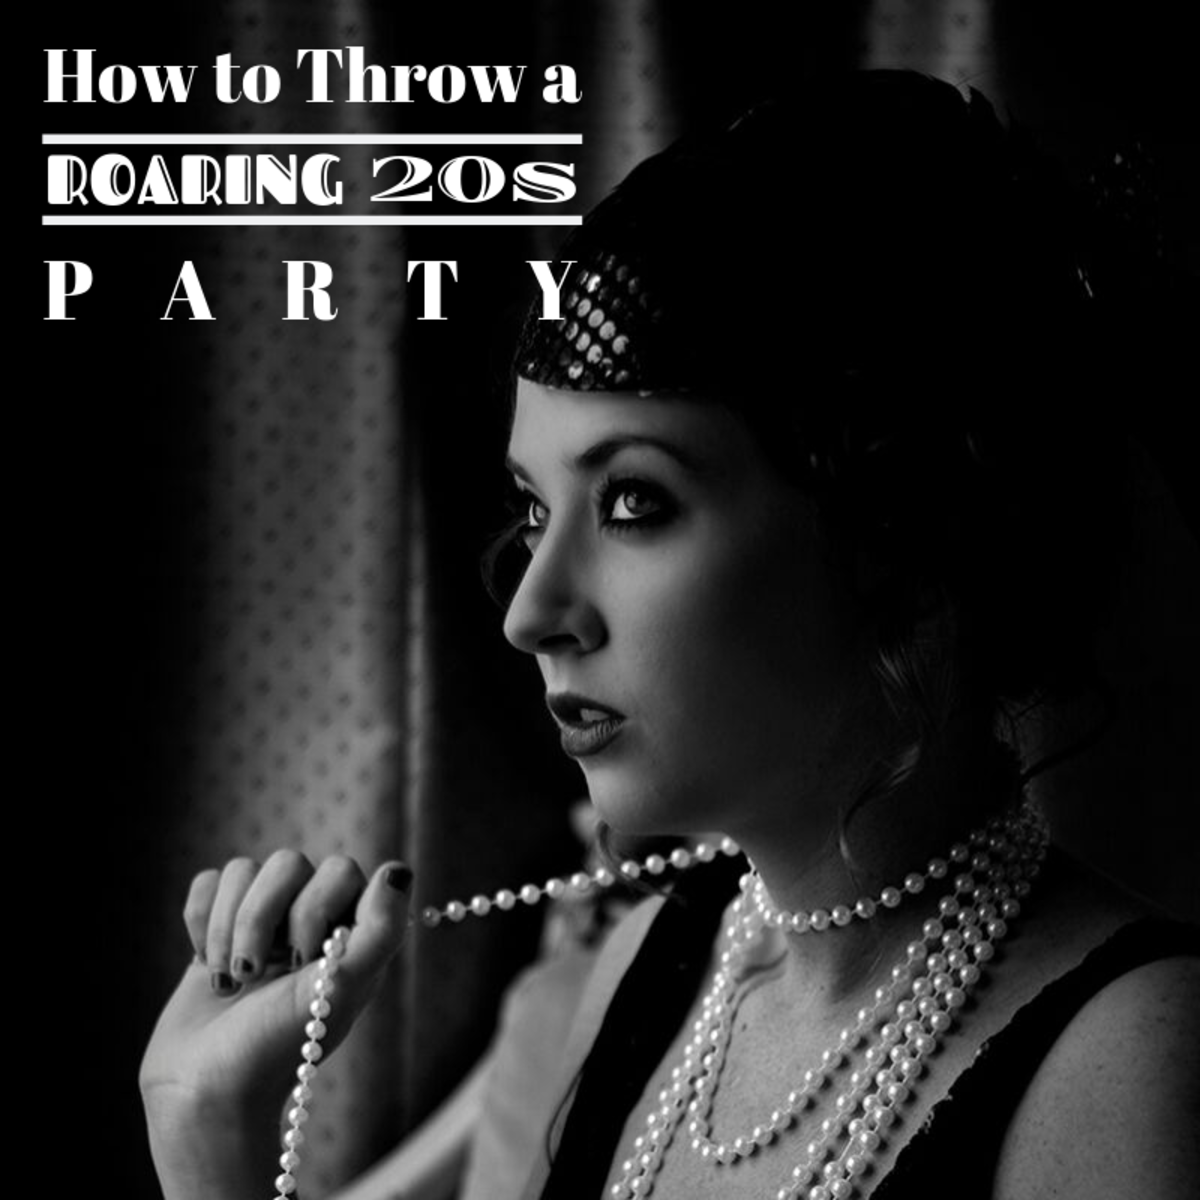 The roaring 20s were a time of jazz, crime, class, and debauchery—turn your house or venue into a speakeasy and dance the night away!